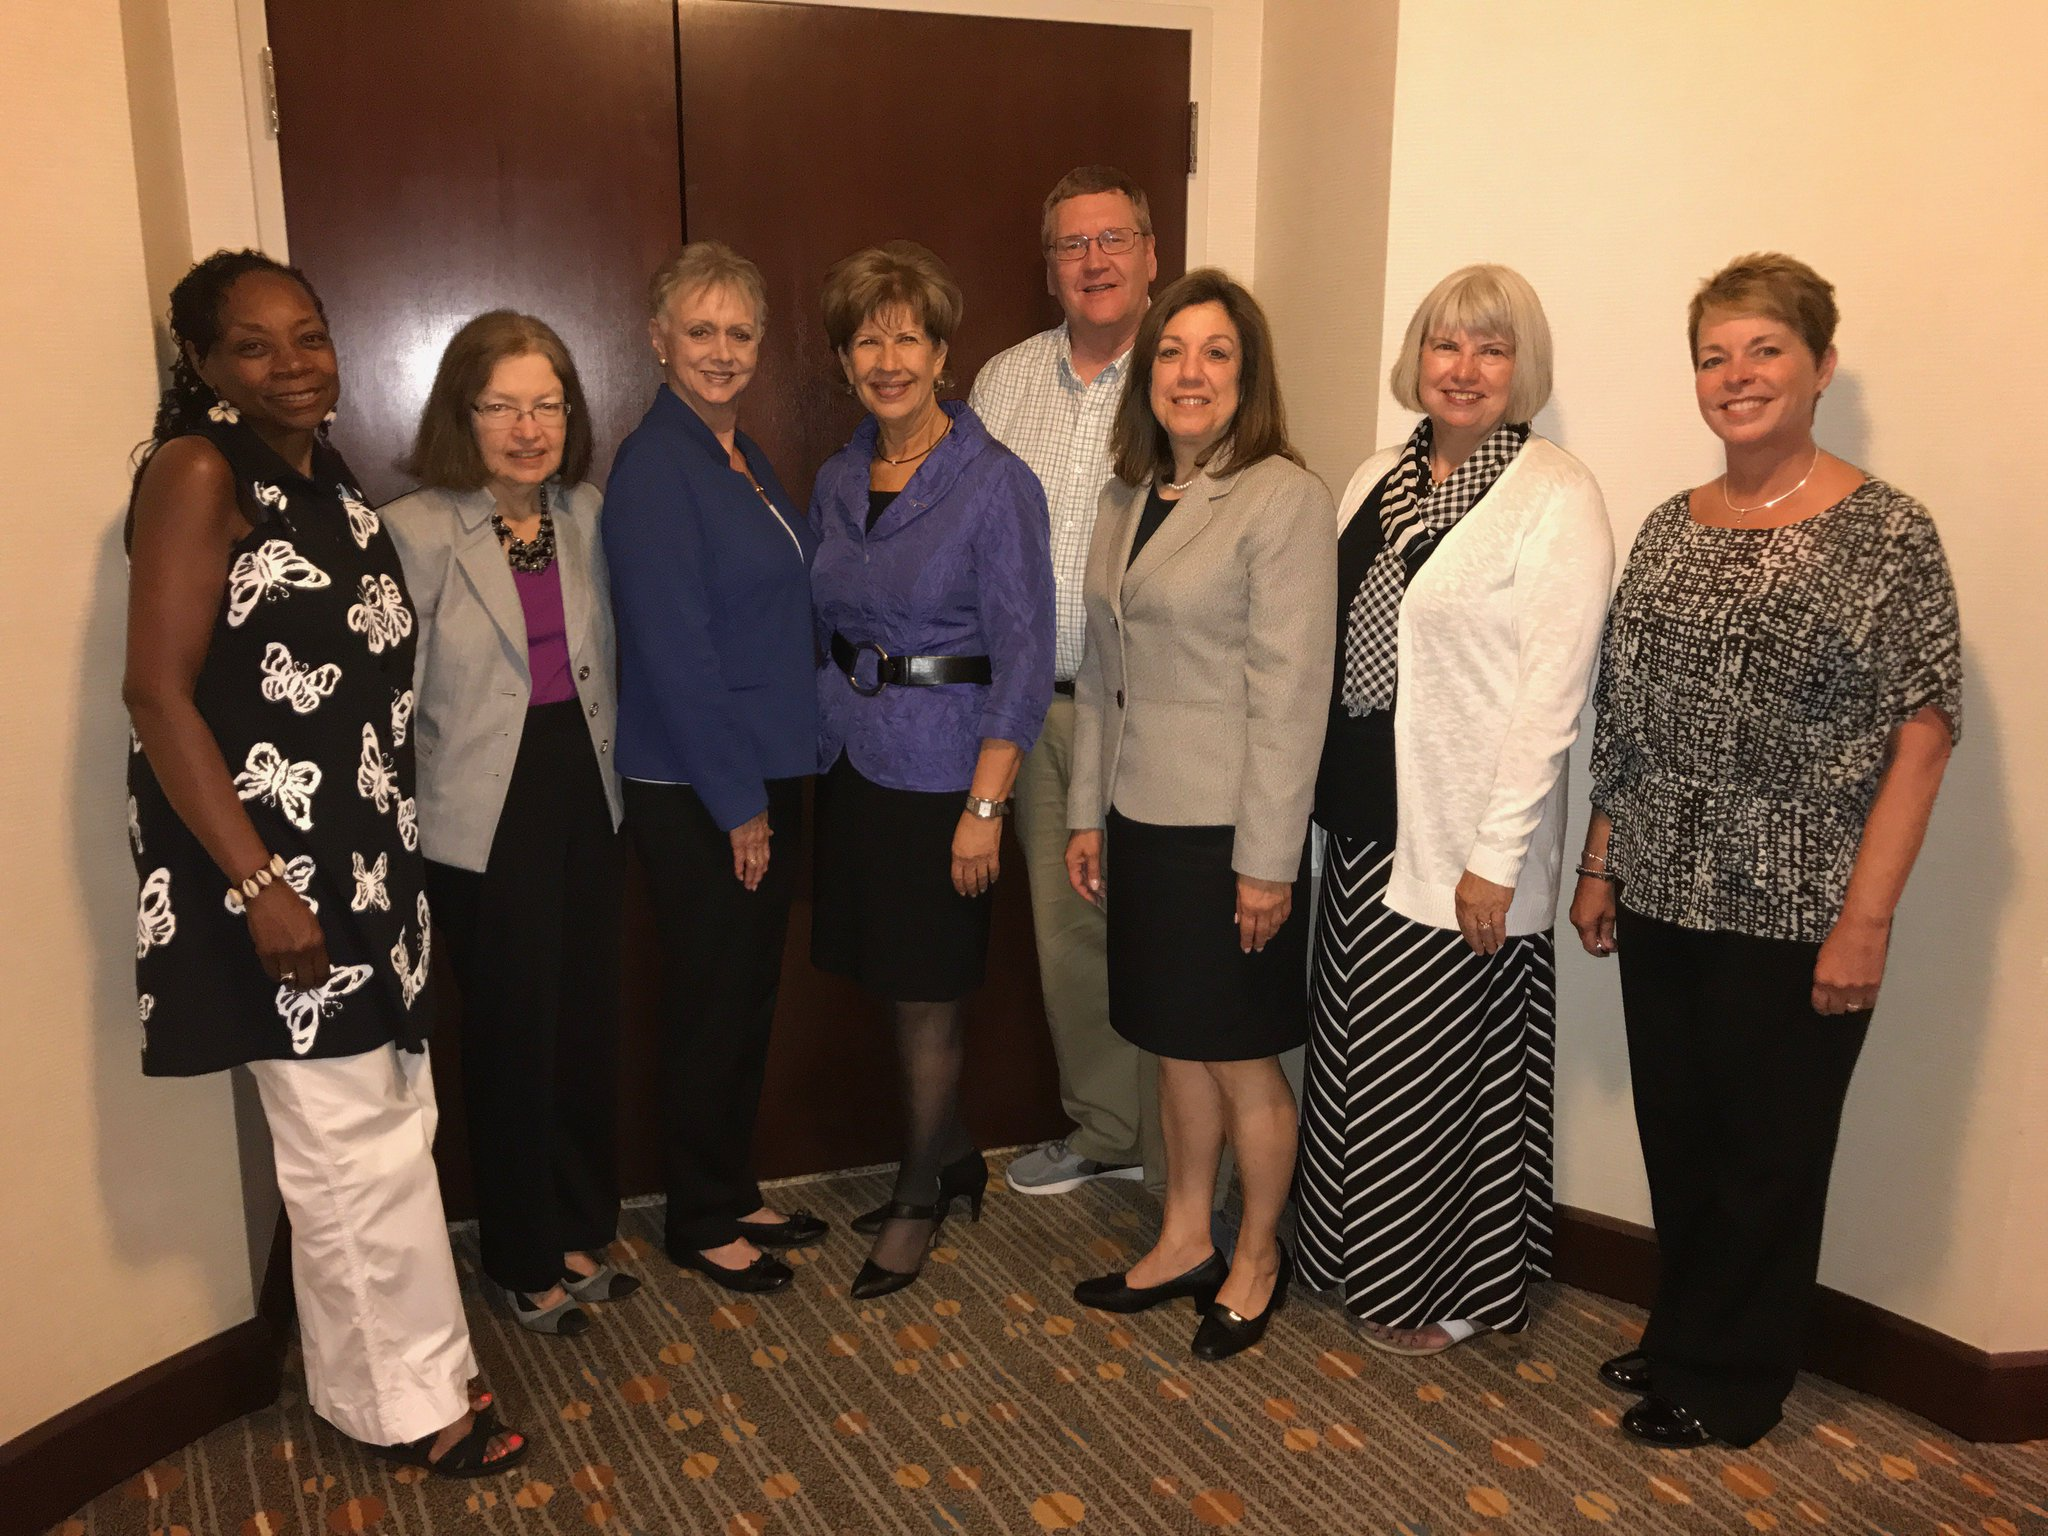 Members of the 2016-2017 @AAFCS Board of Directors are pleased to welcome #AAFCSac attendees. Hope U have a great time this week in Dallas! https://t.co/oUD3HPsEHb